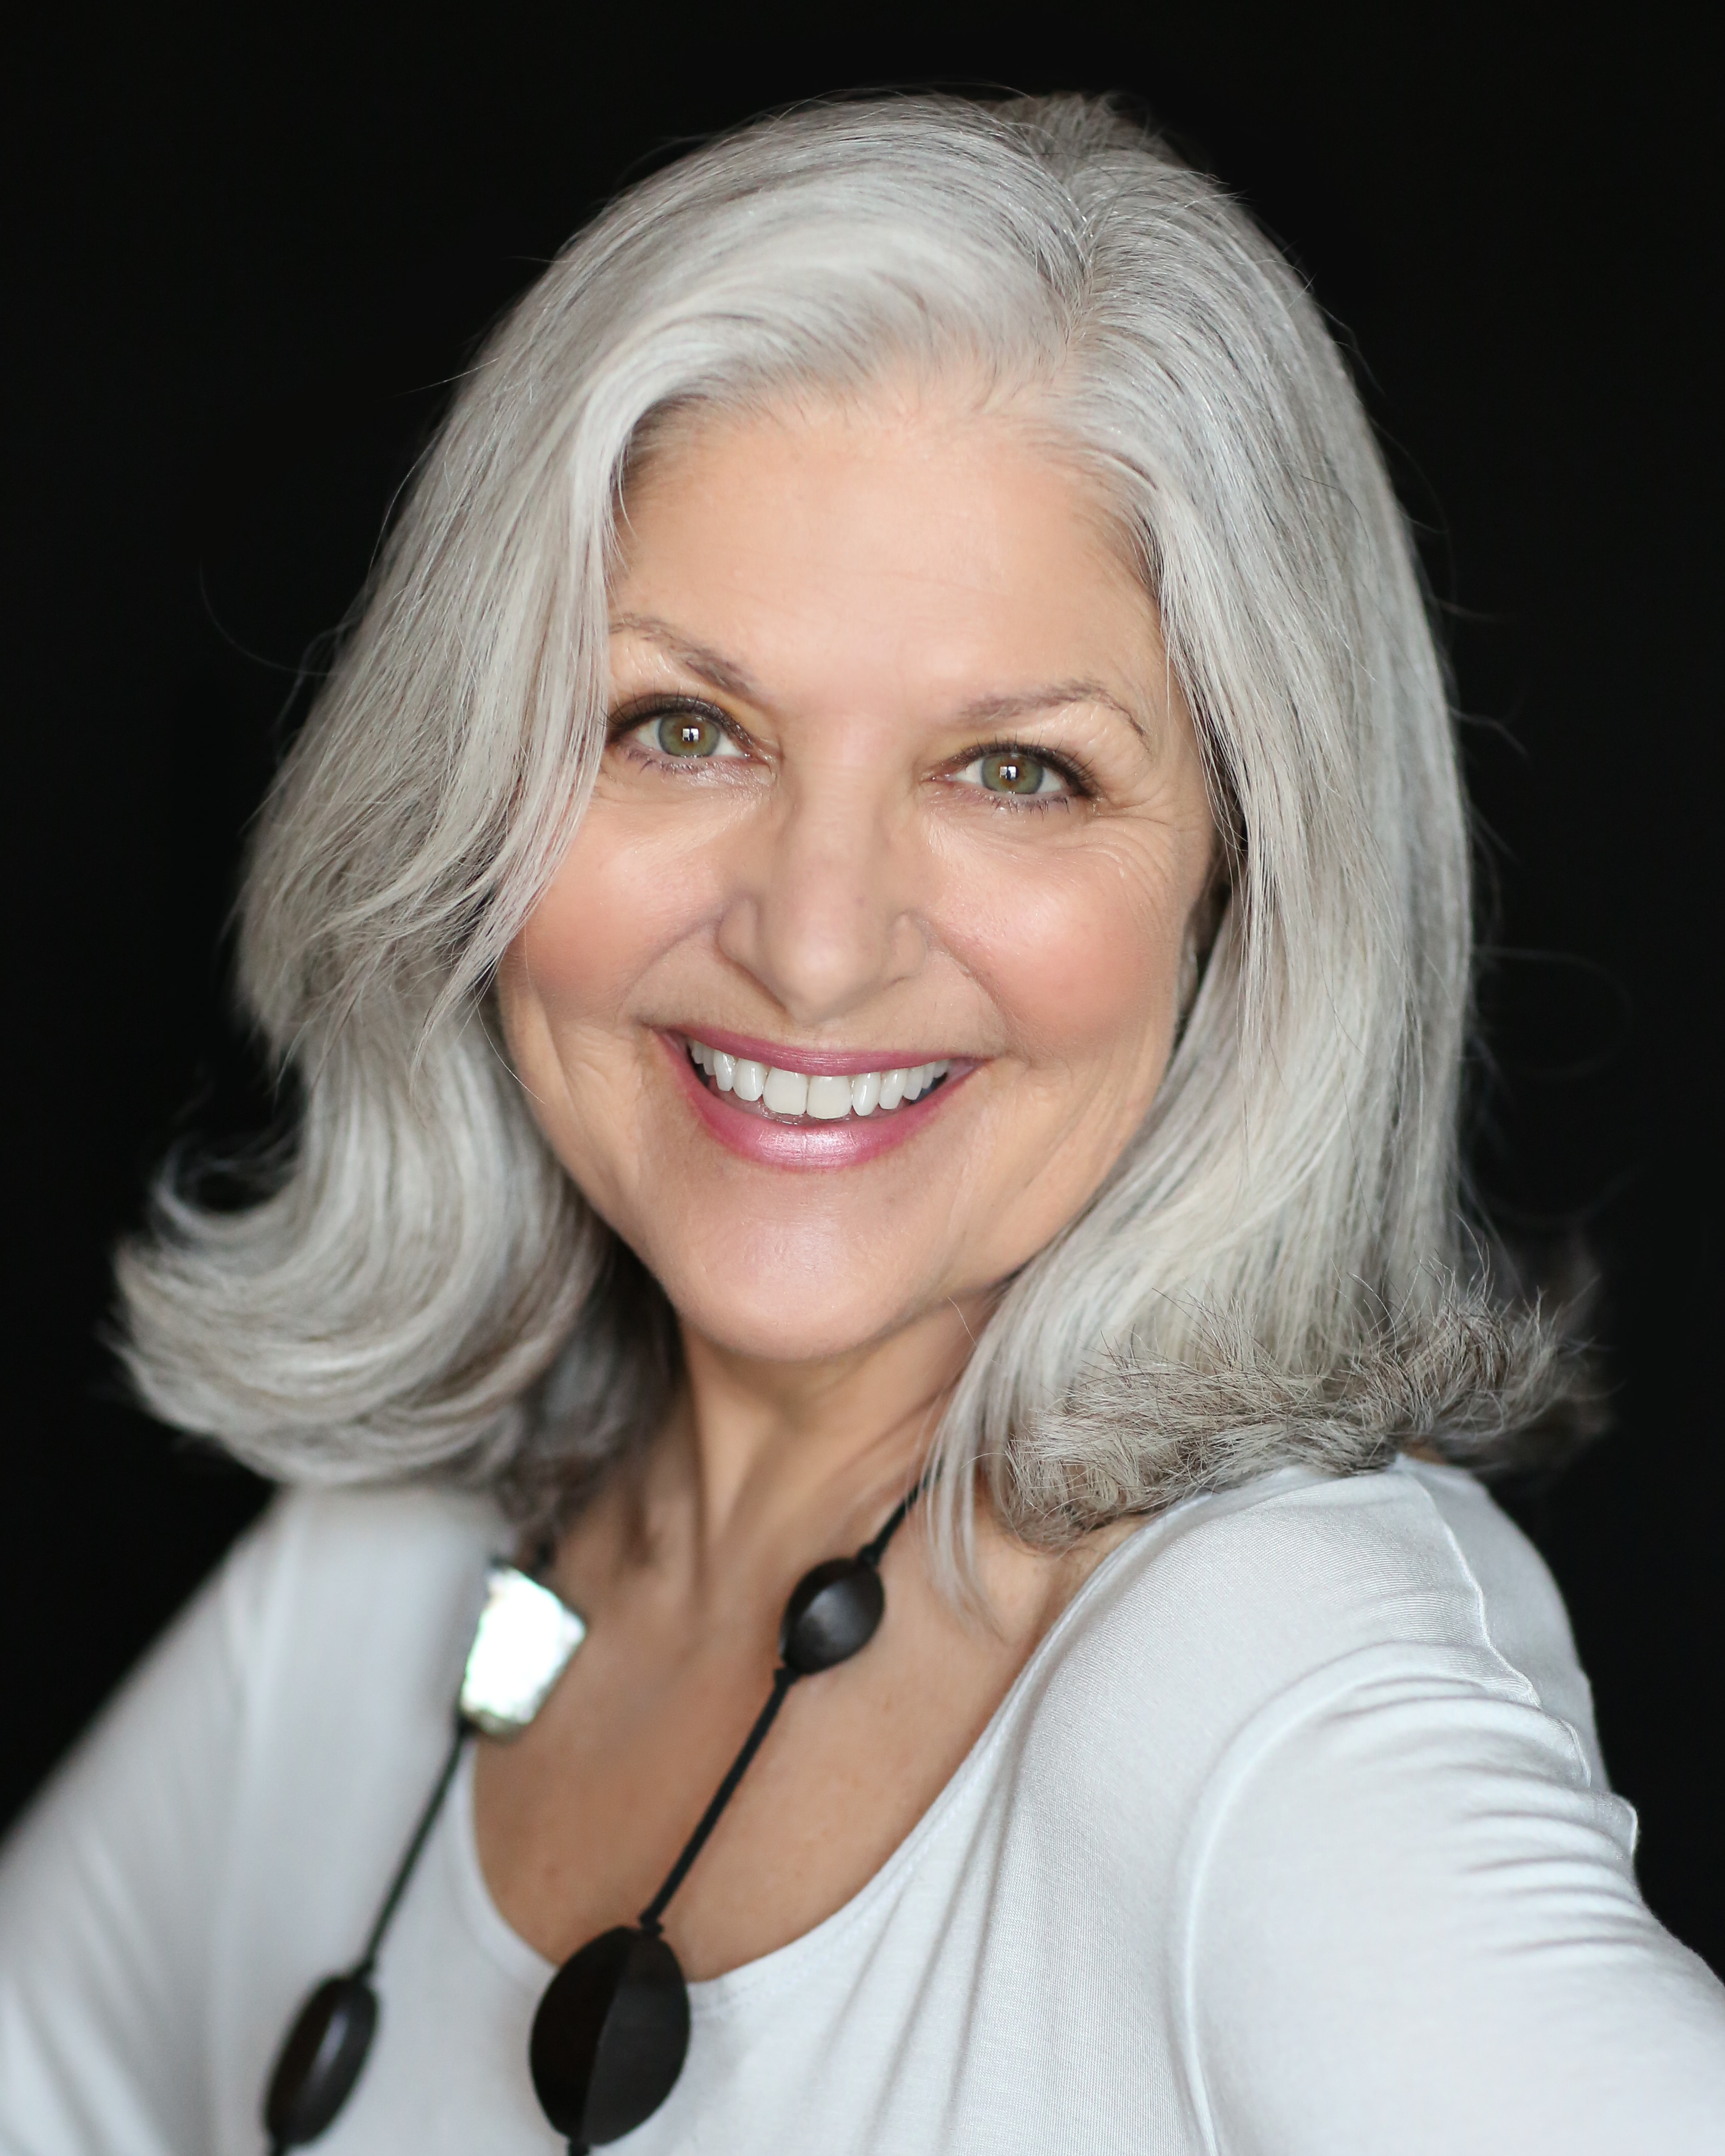 Profile picture of Janet Neal